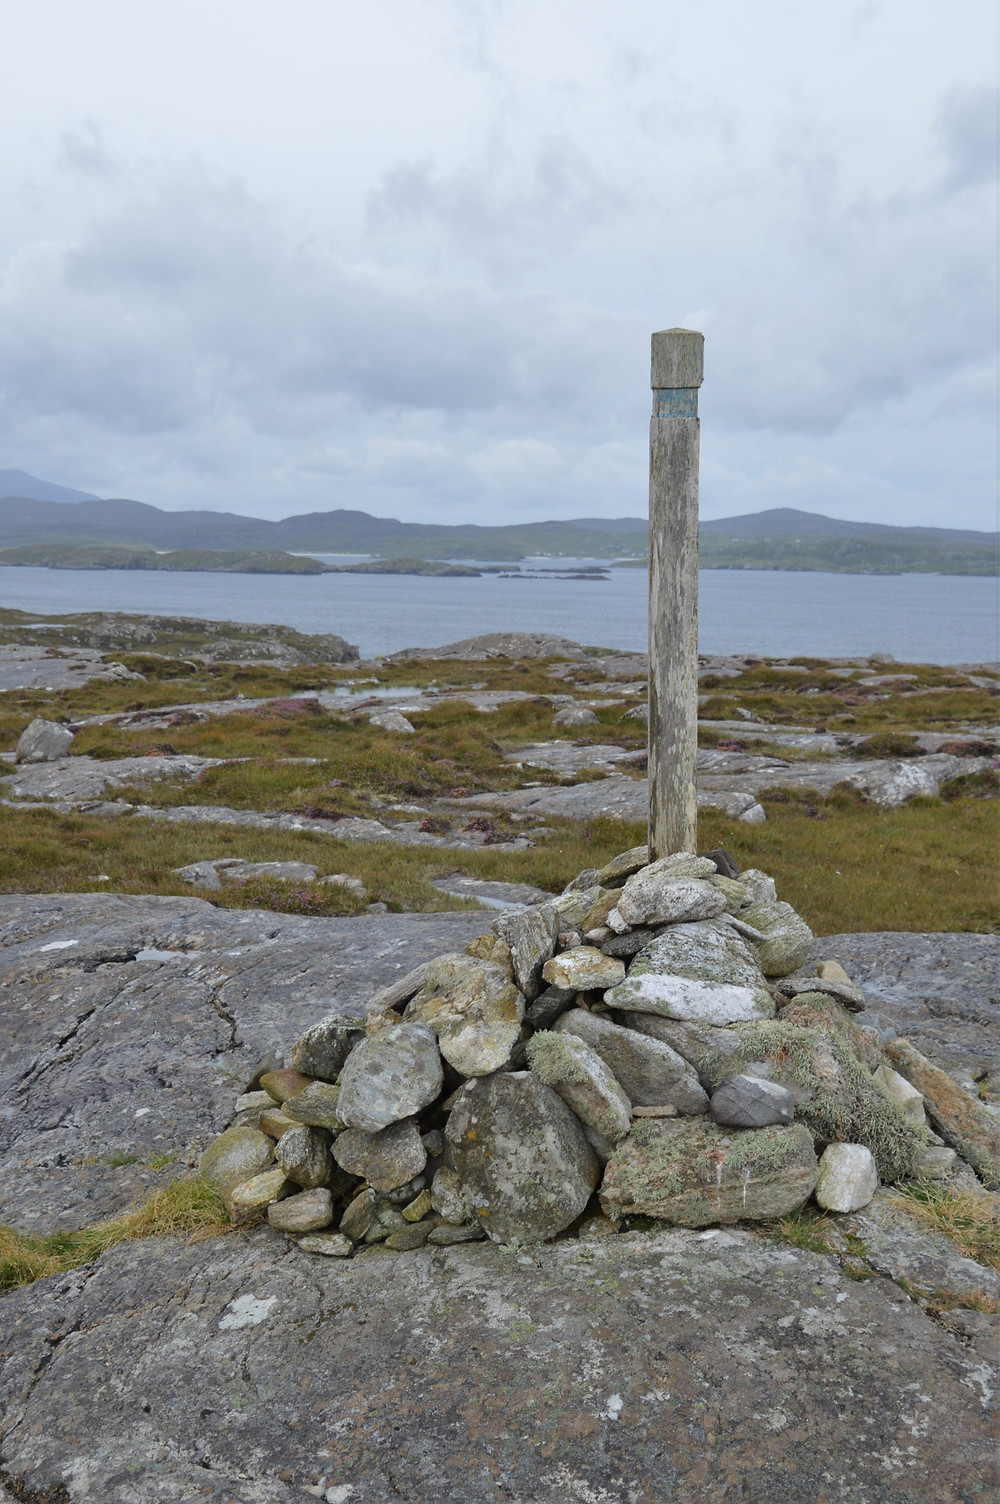 At the top of Beinn an Toib a nice view of Loch Roag and the islands sprinkled throughout the bay on